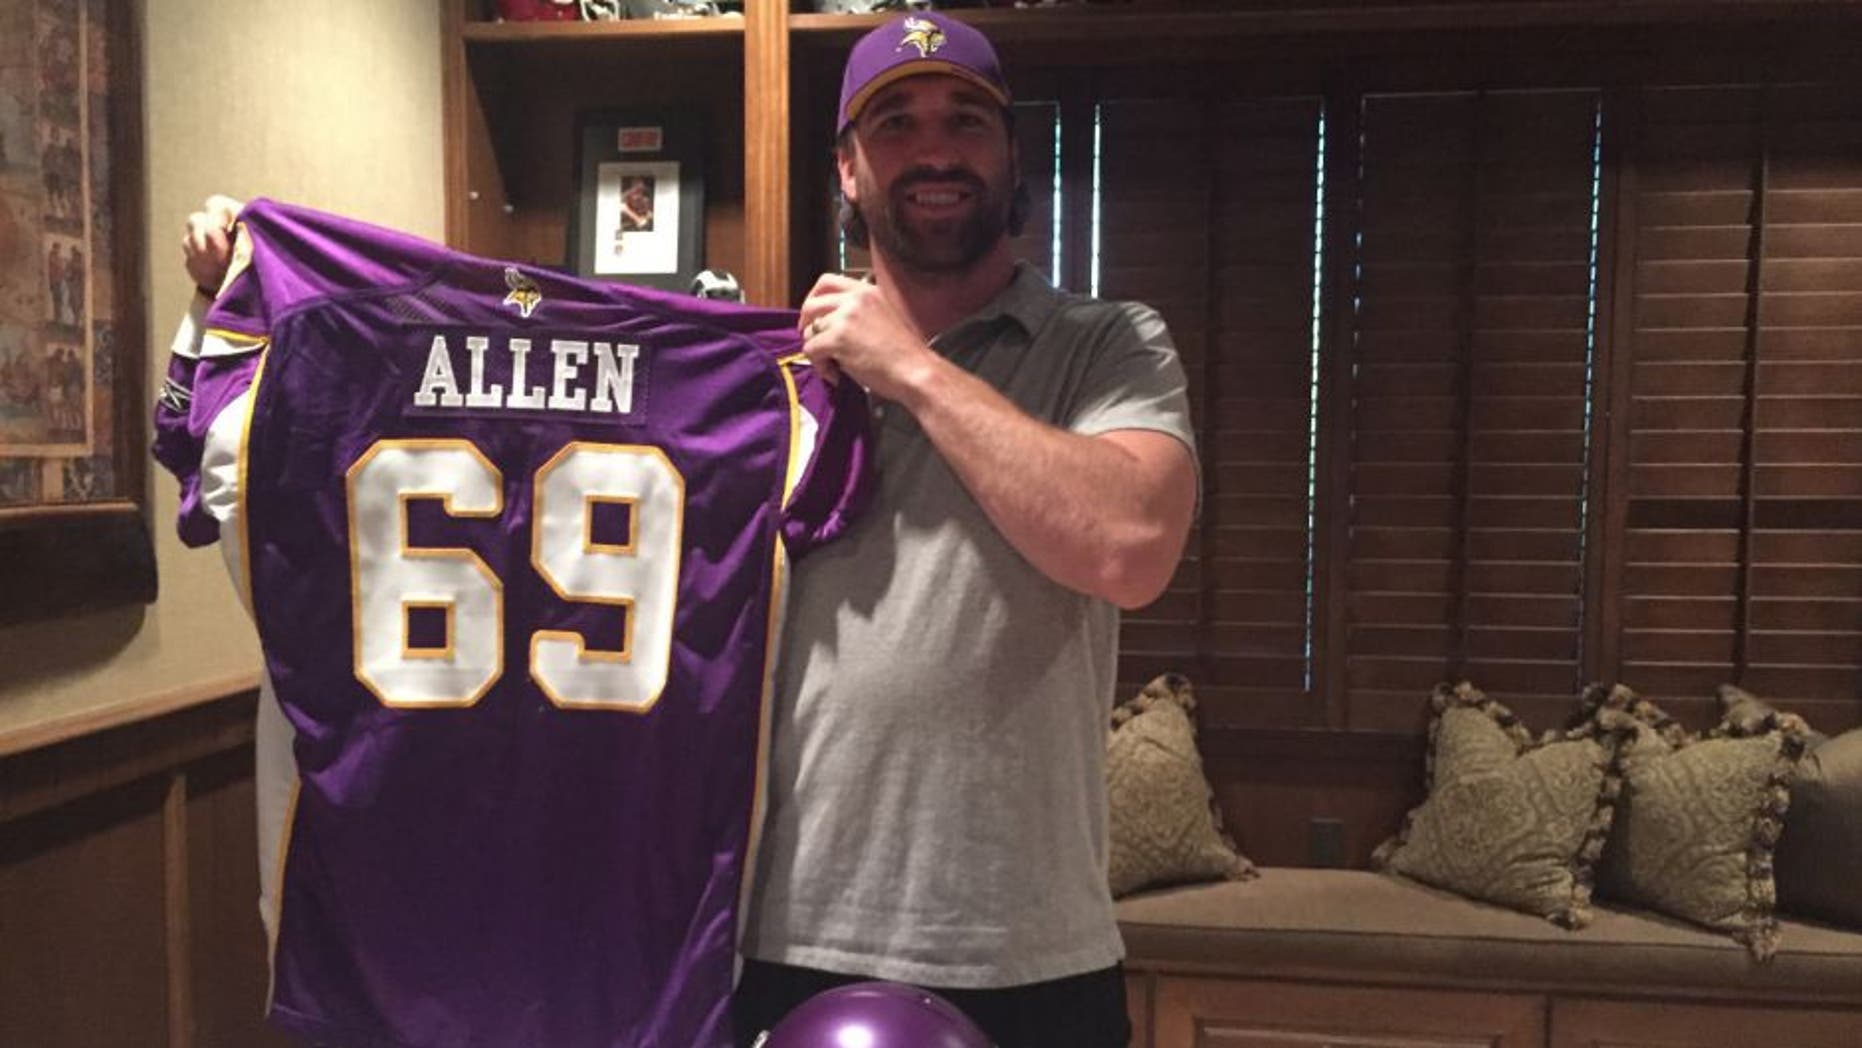 Jared Allen will officially retire as a member of the Minnesota Vikings, after spending six seasons with the team.